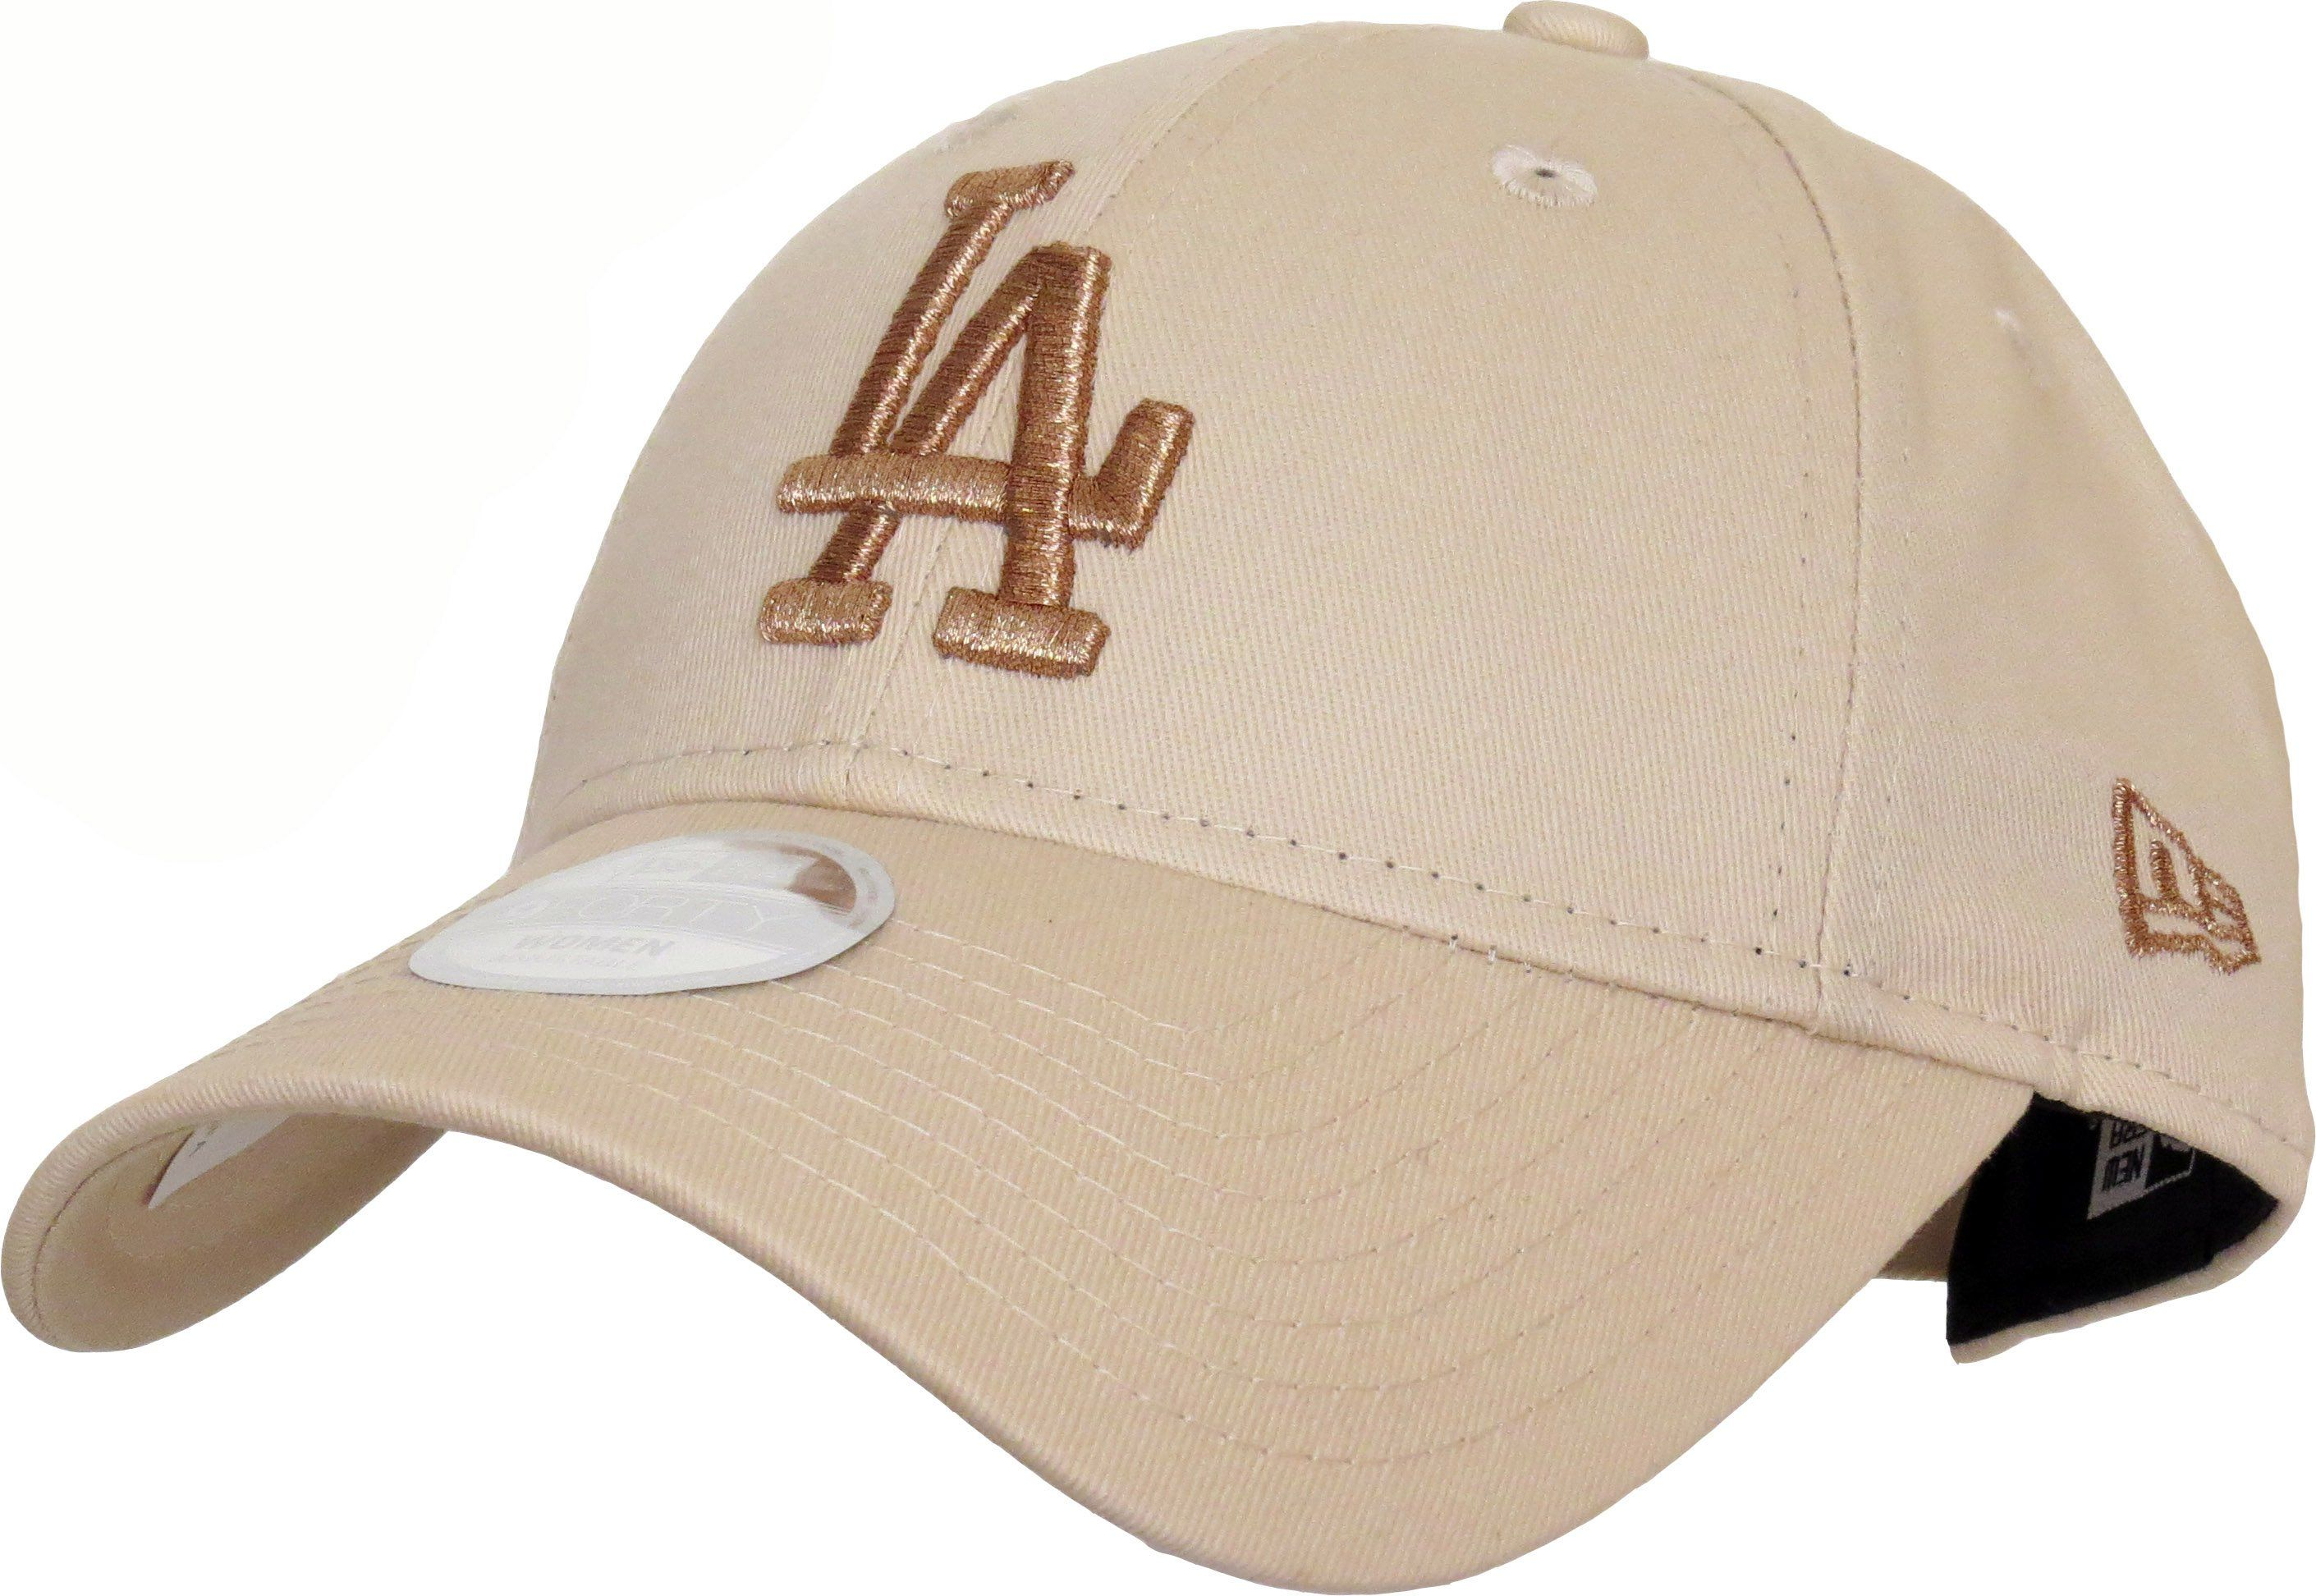 32a246aa0d4 New Era 9Forty Womens LA Dodgers Baseball Cap. Stone coloured